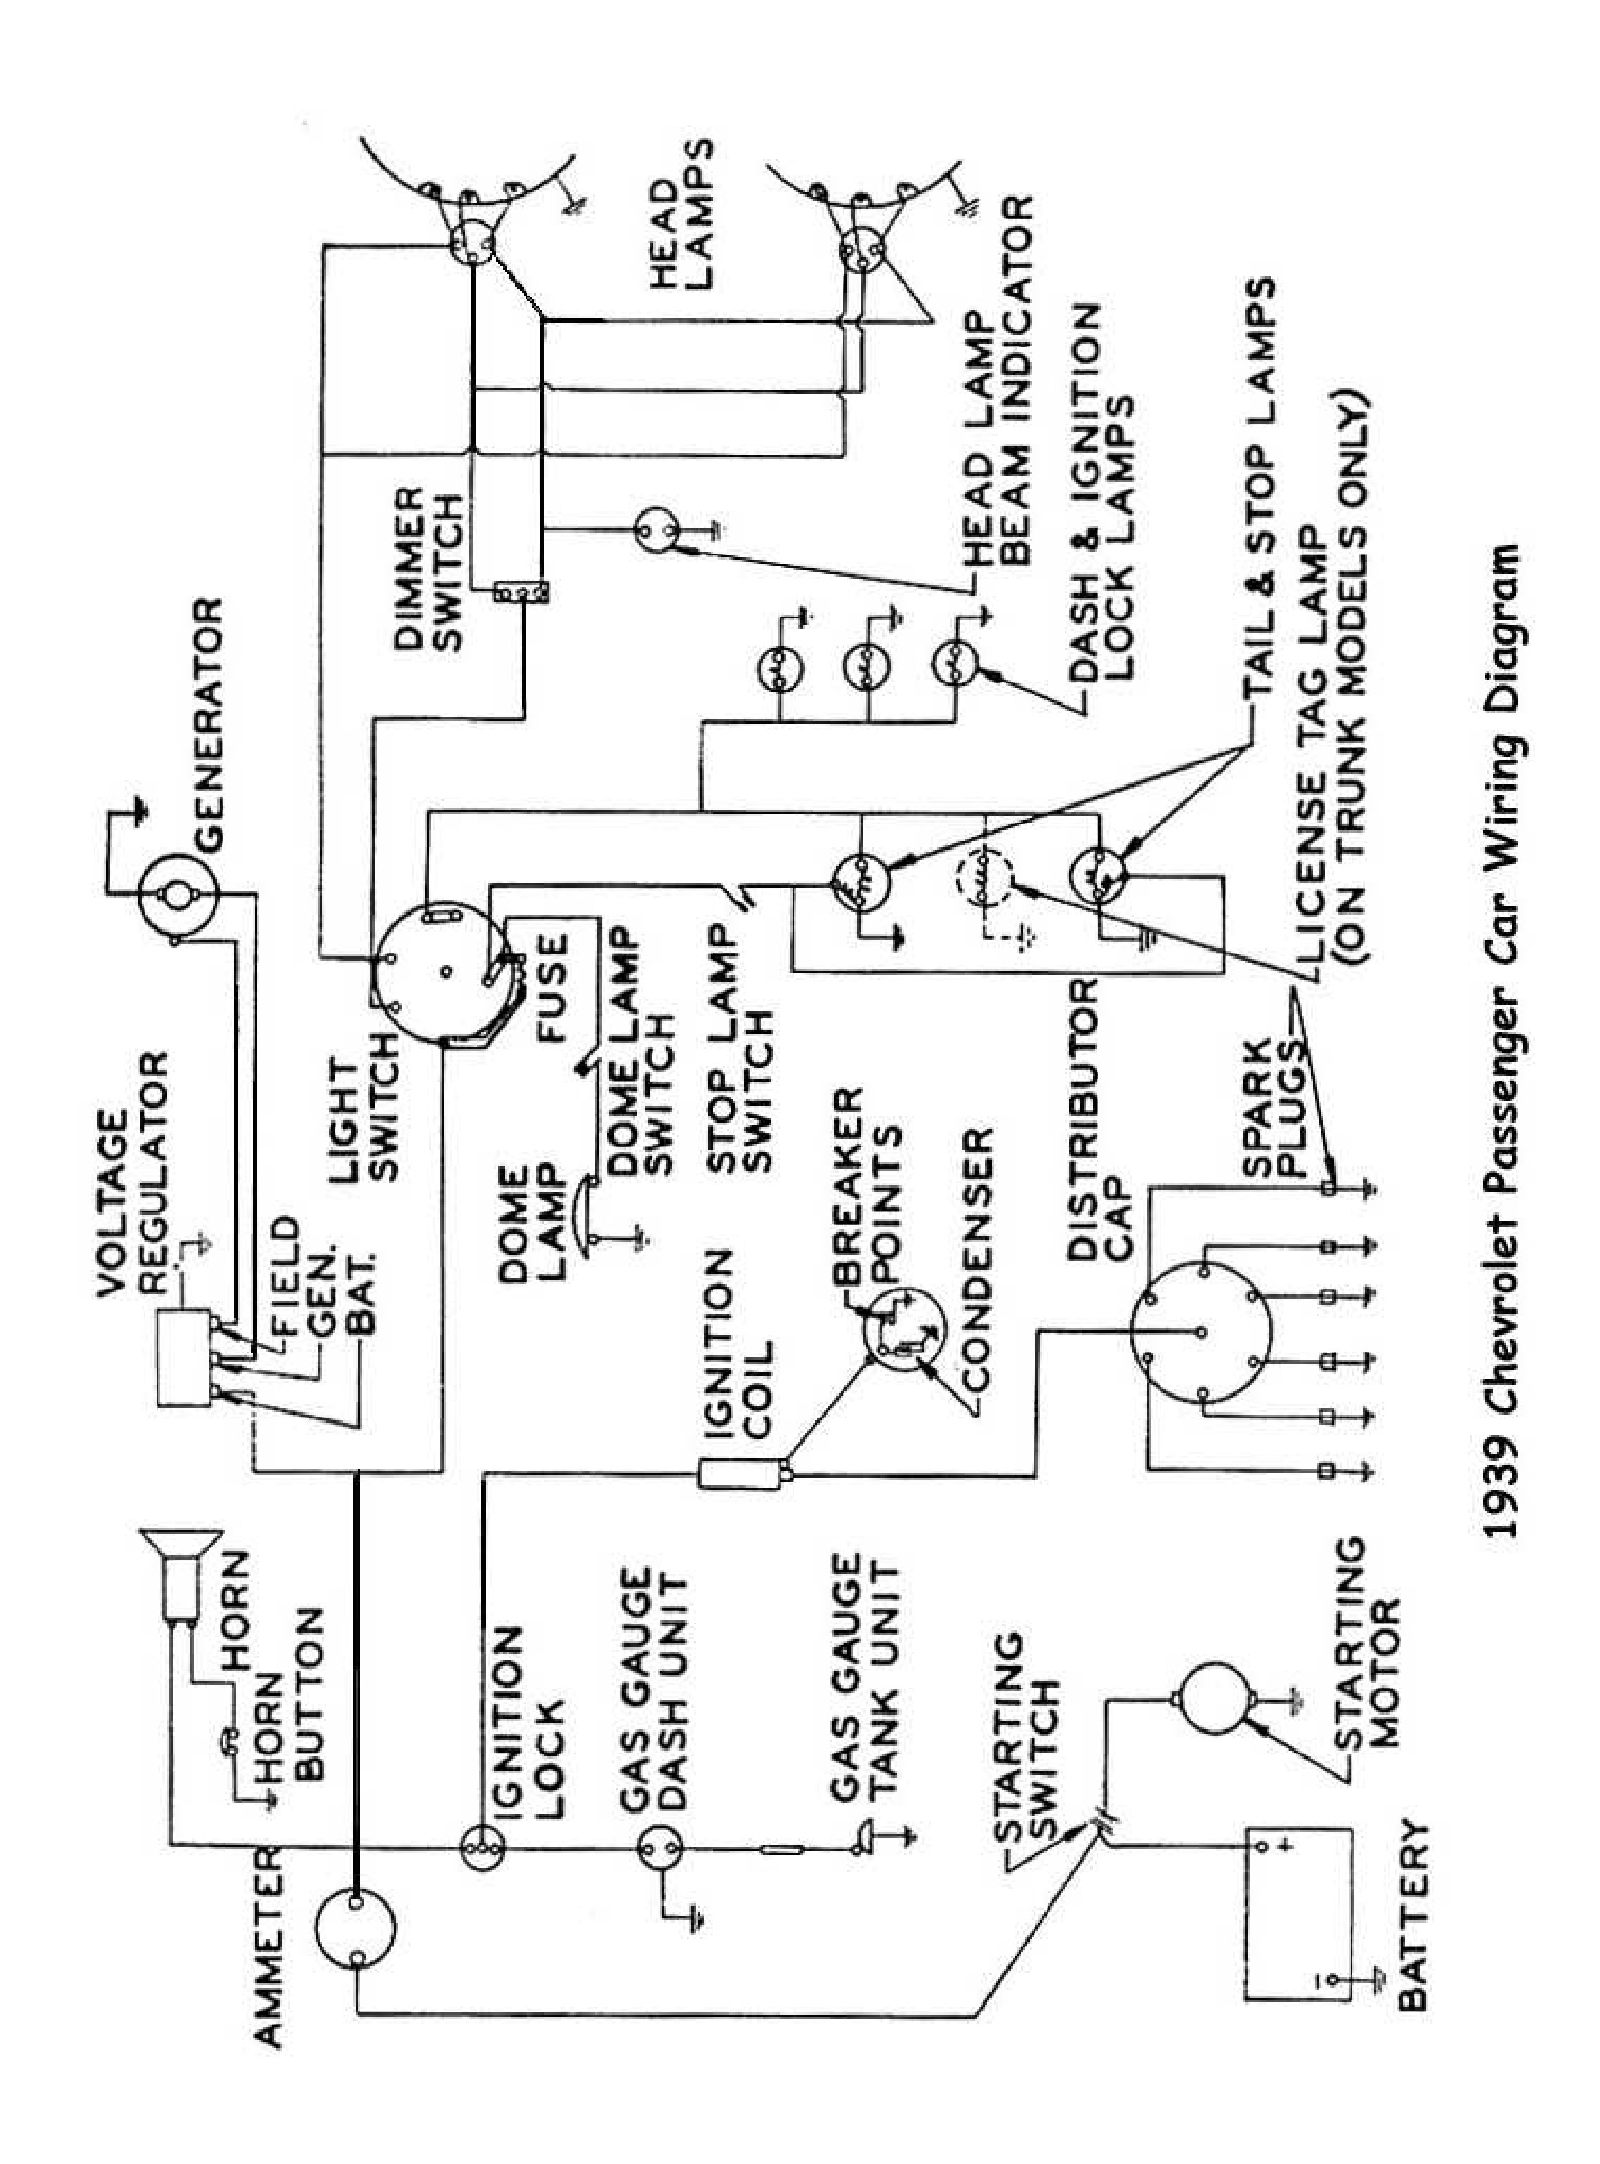 39car chevy wiring diagrams simple auto wiring diagrams at gsmportal.co